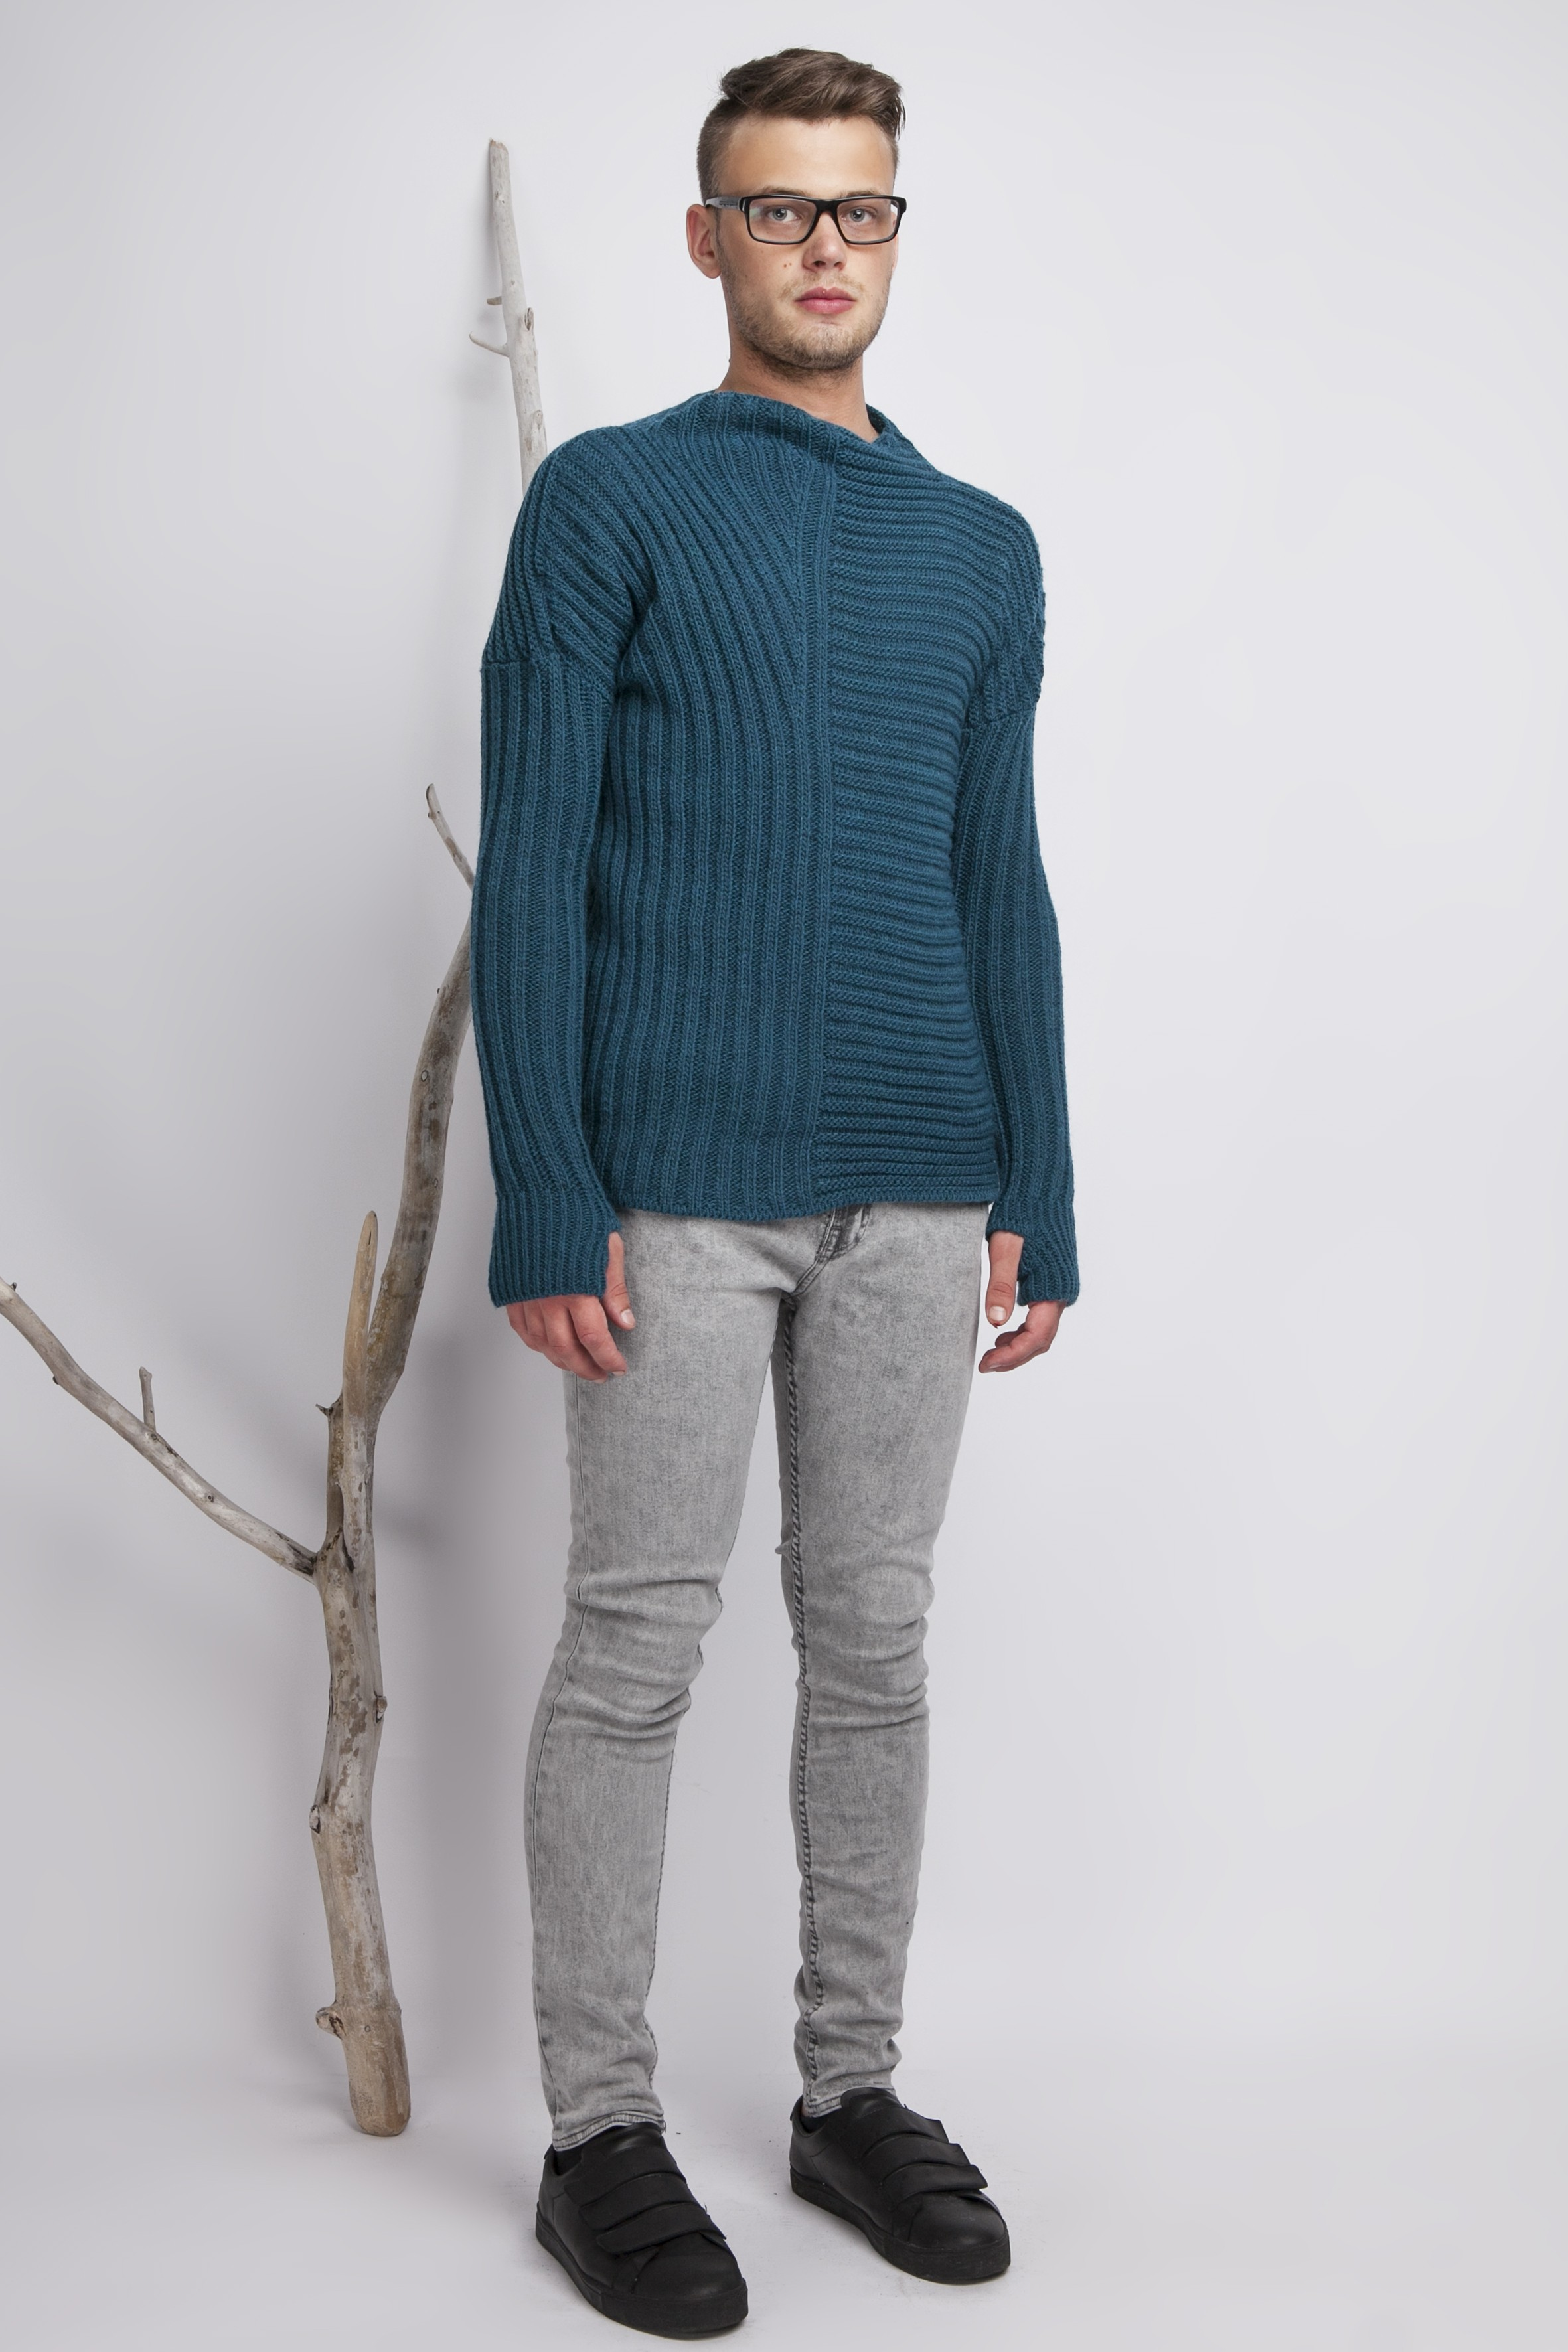 Thumbhole Sweater | Jacket with Thumb Holes Mens | Sweaters with Finger Holes